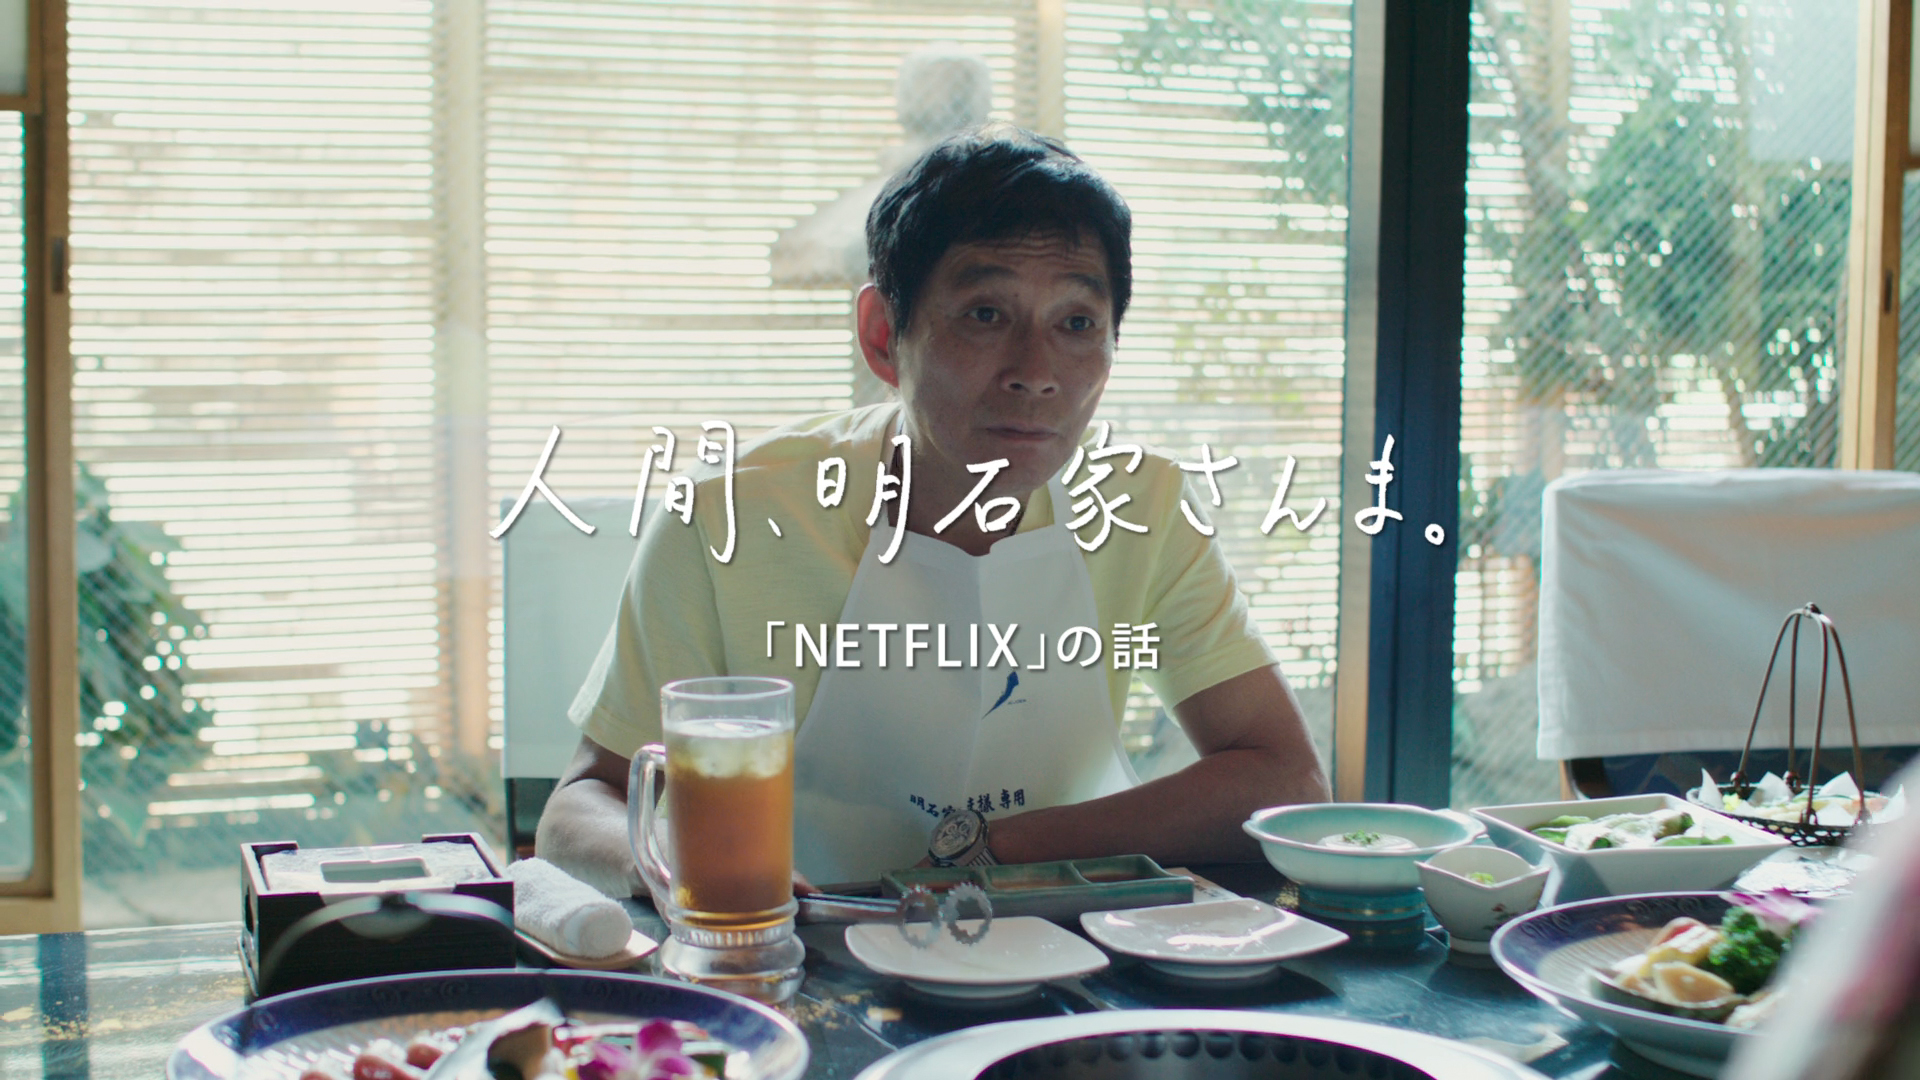 逕サ蜒・Netflix WEB movie1_netflix